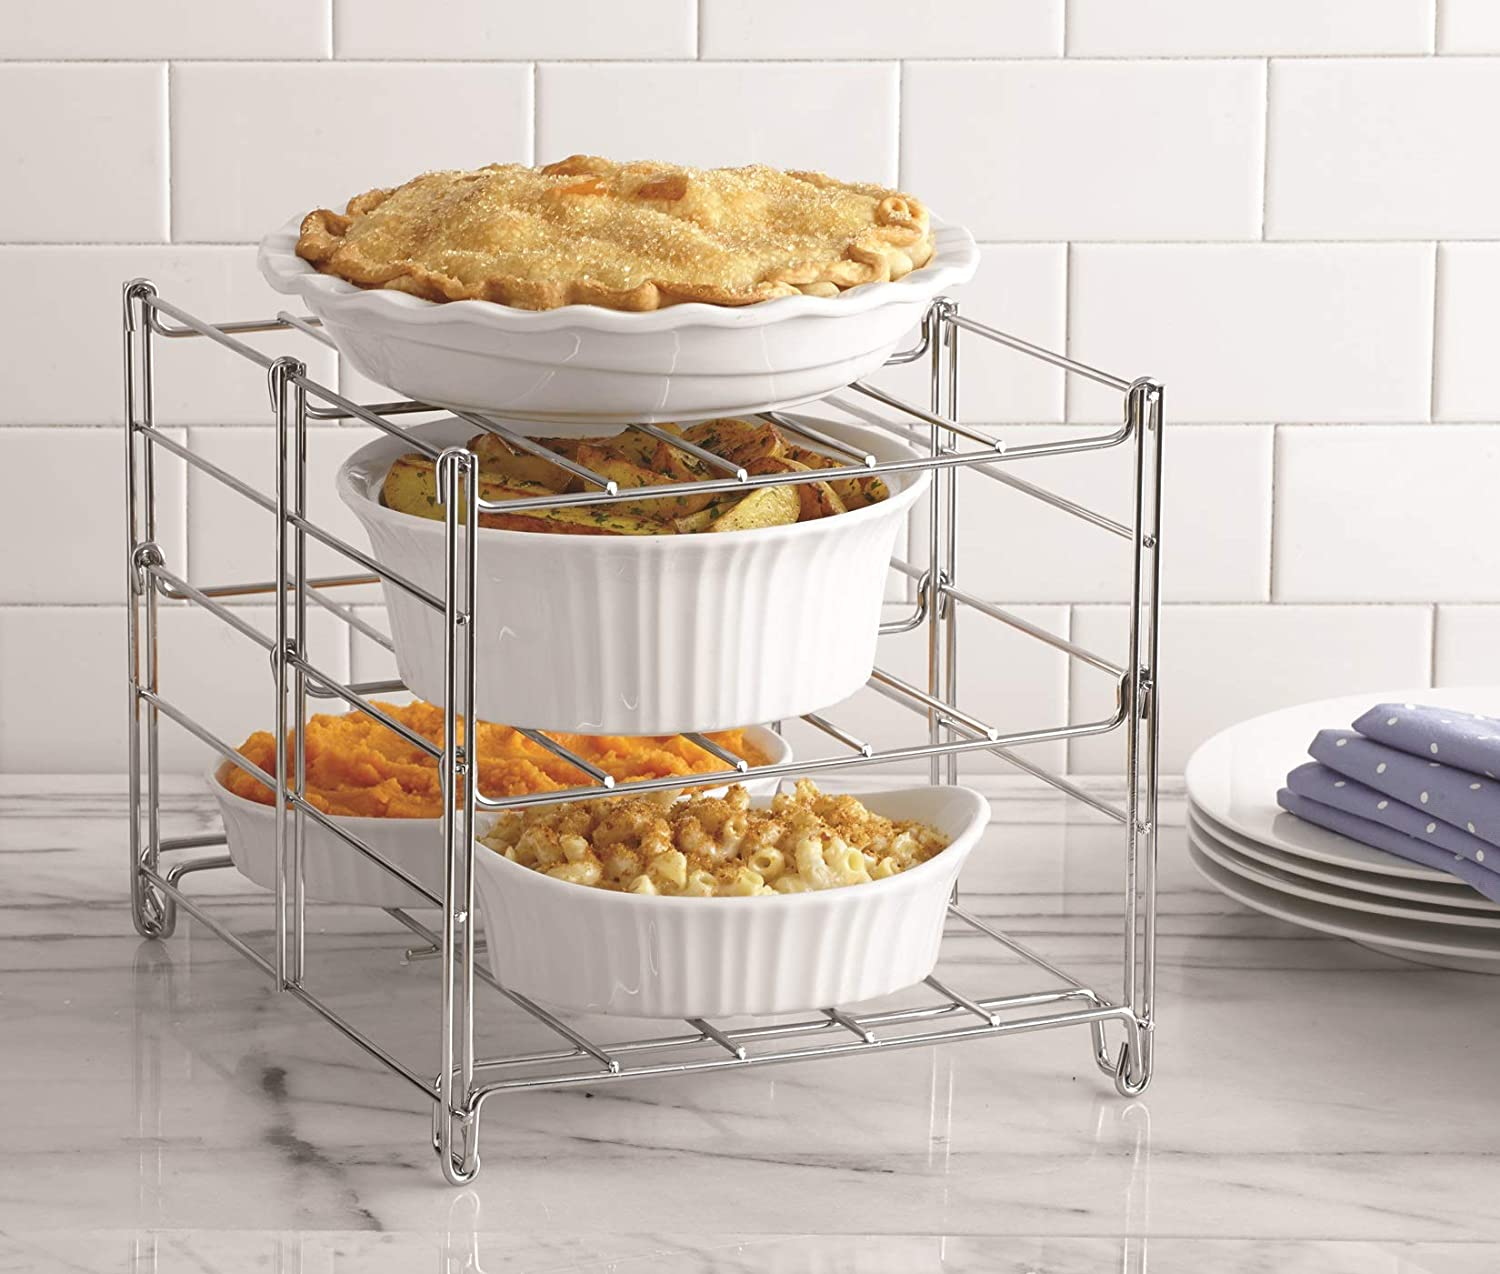 Nifty 3-Tier Oven Cheap SALE Start Rack Max 81% OFF – Non-Stick Dishwasher Chrome Safe